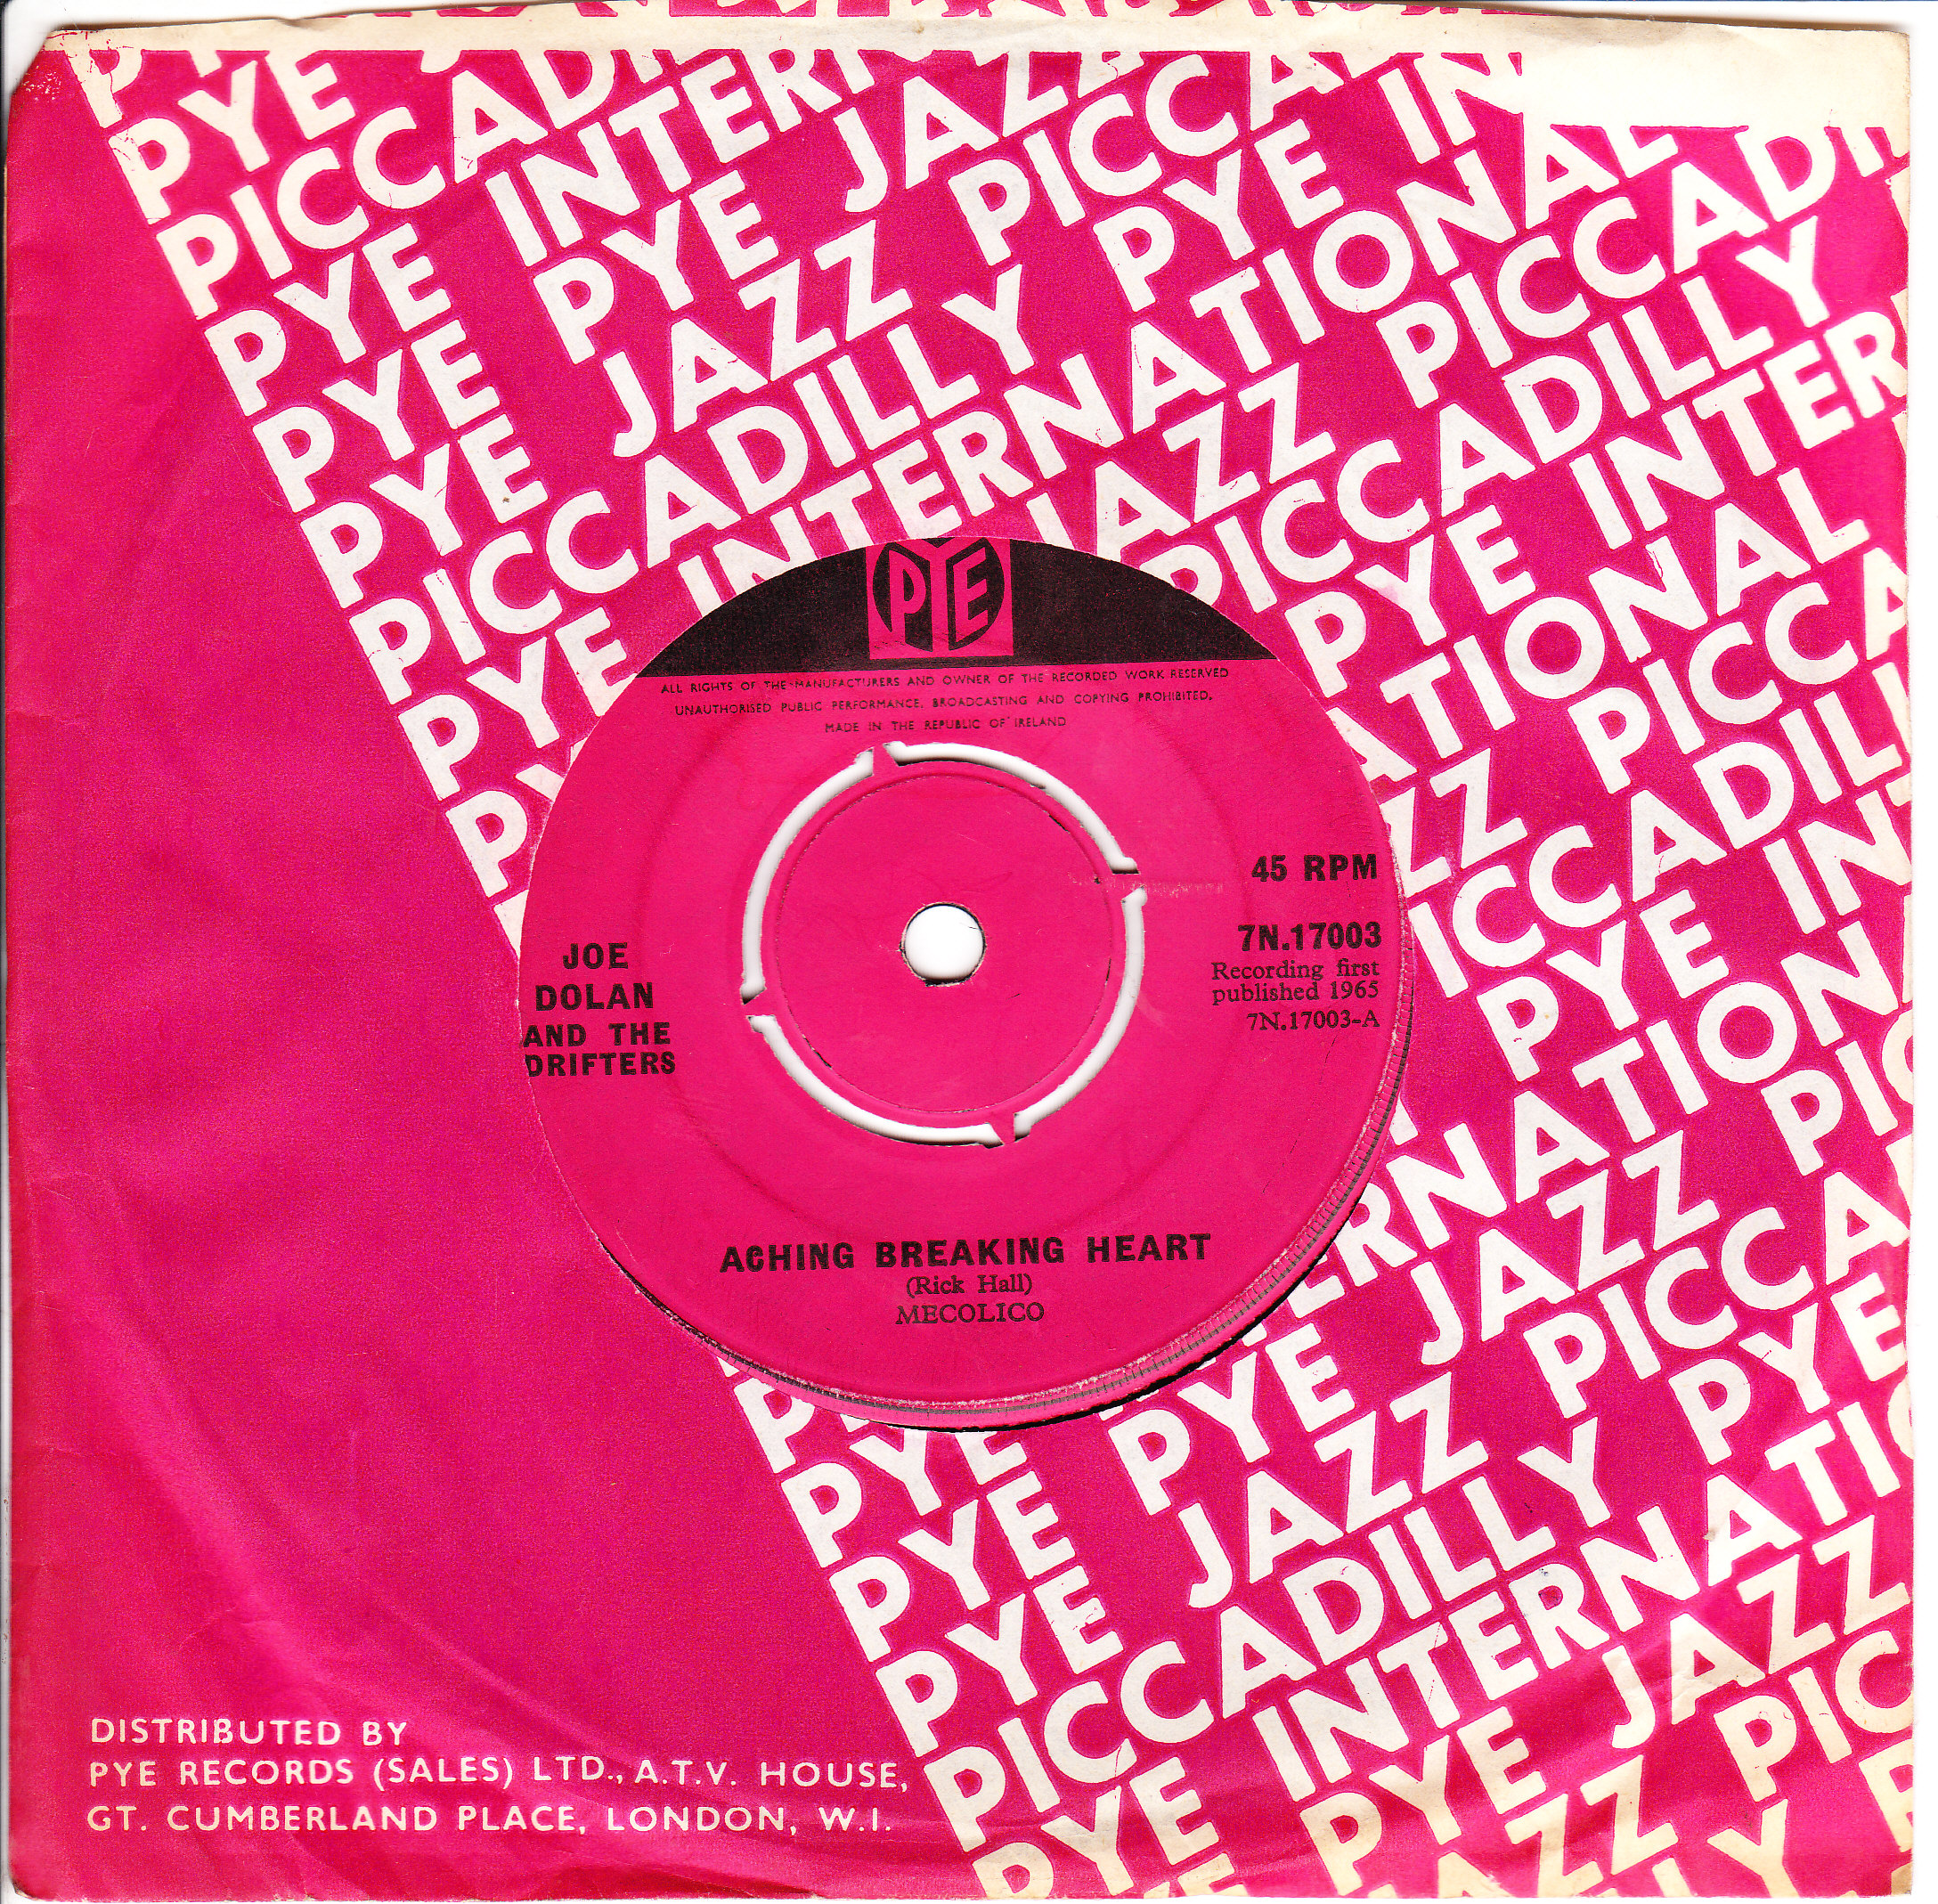 Joe Dolan & Drifters - Aching Breaking Heart - PYE 7N 17003